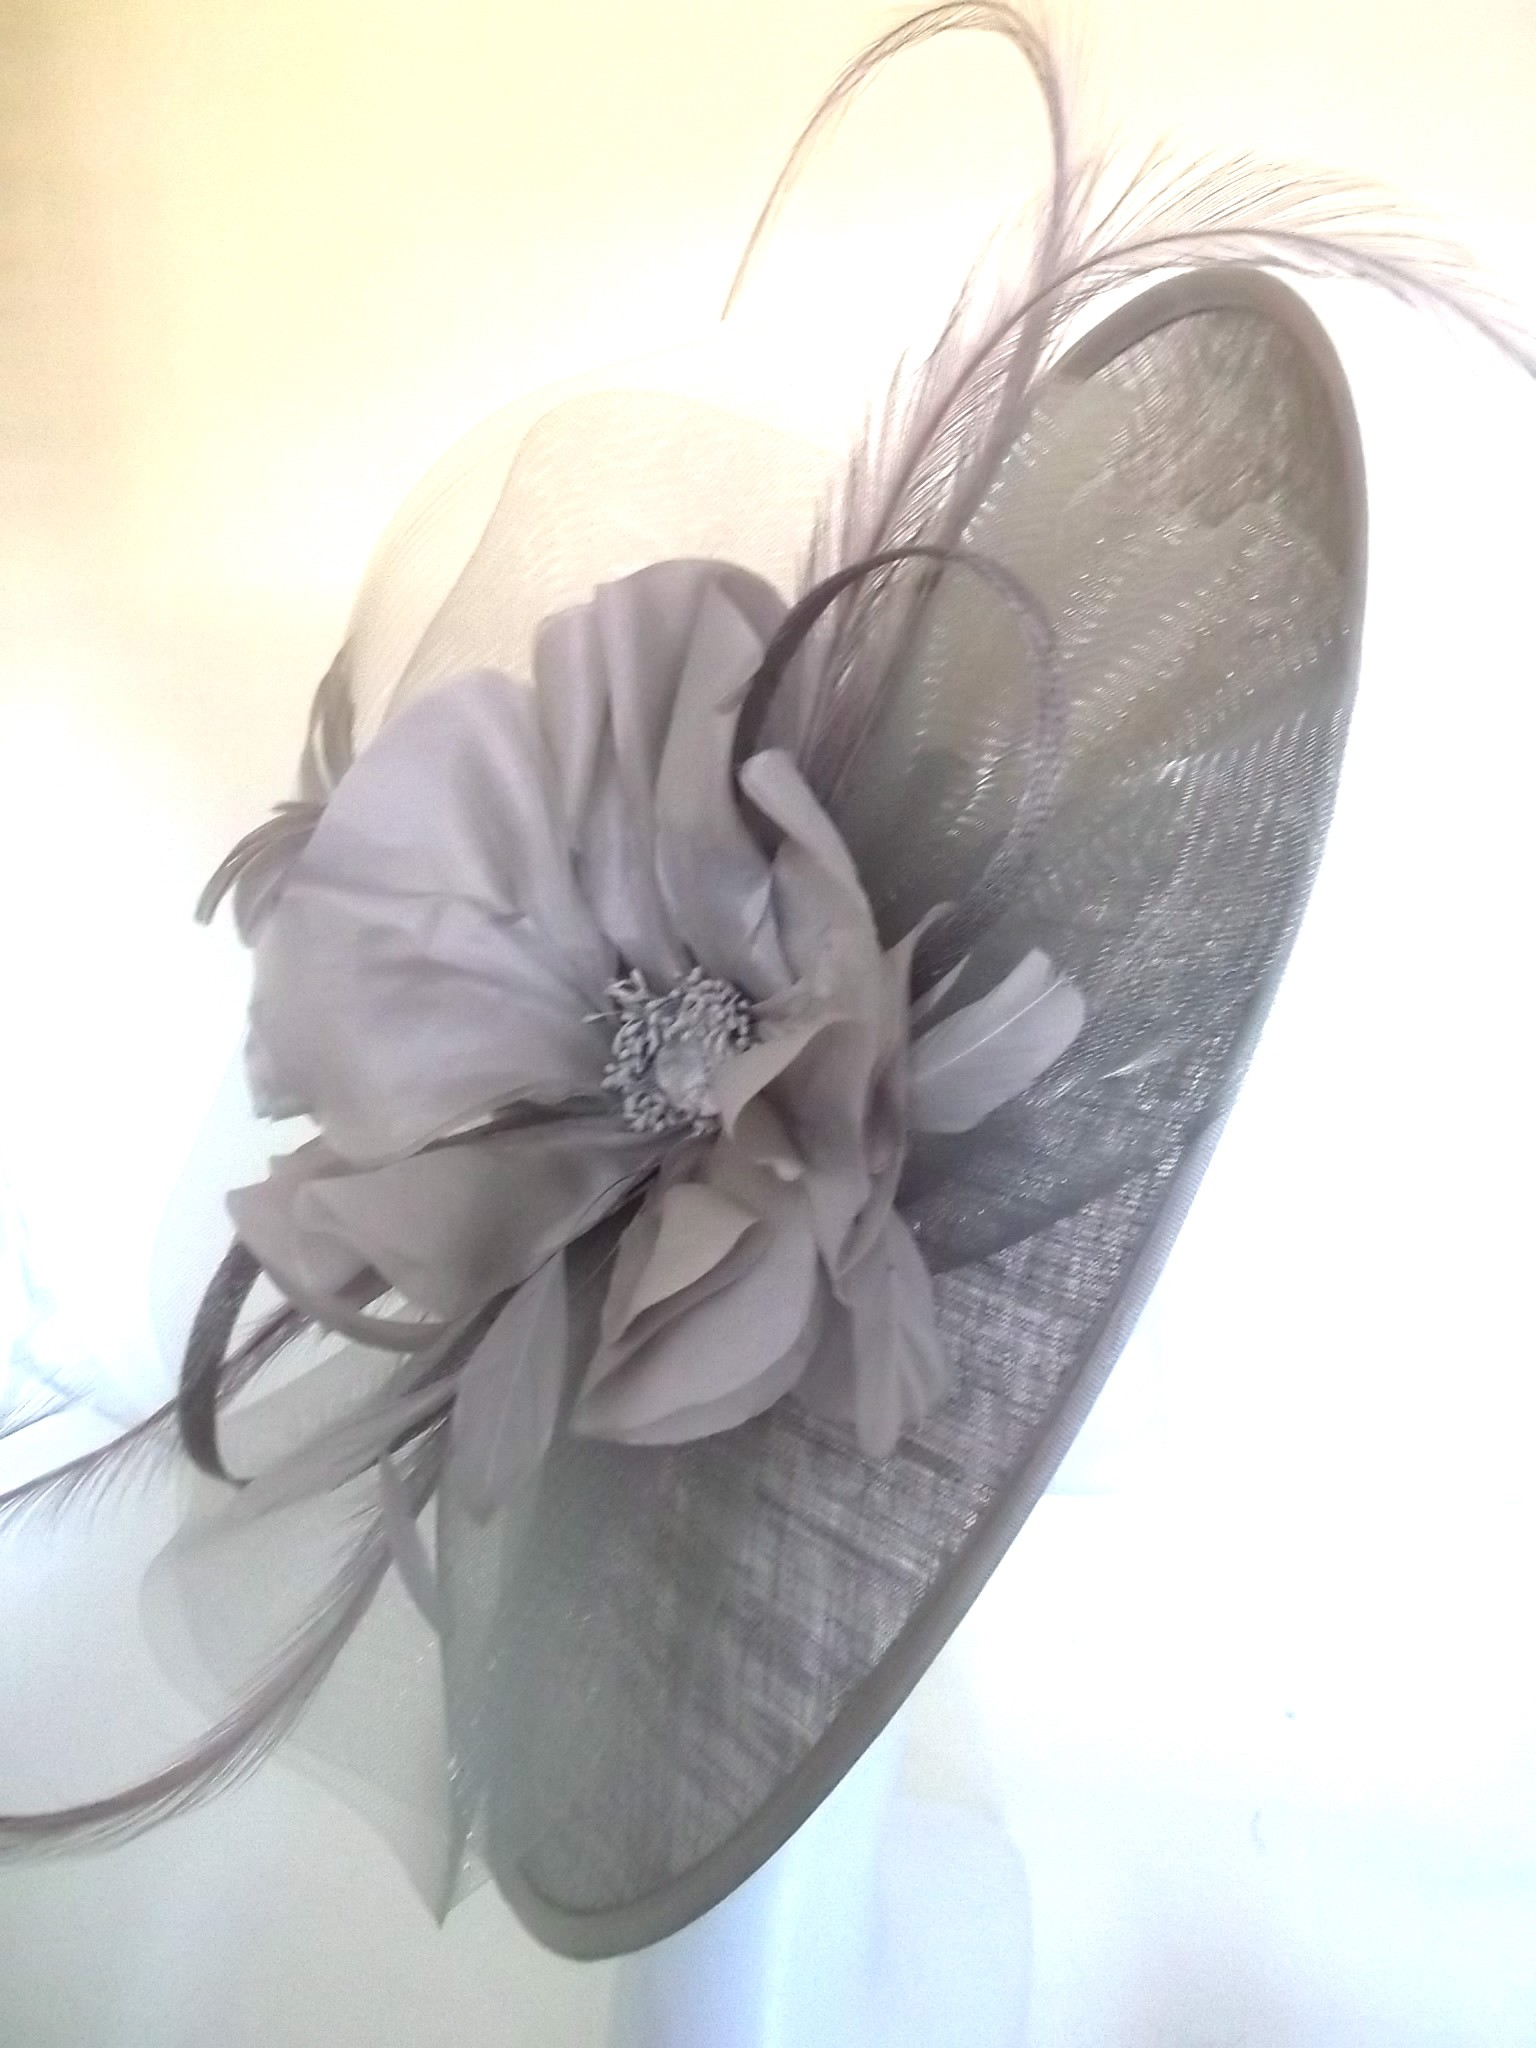 d0048aa9fc0a1 Snoxell Gwyther - Occasion Hat (Taupe) - Statement Pieces | Wedding Hats